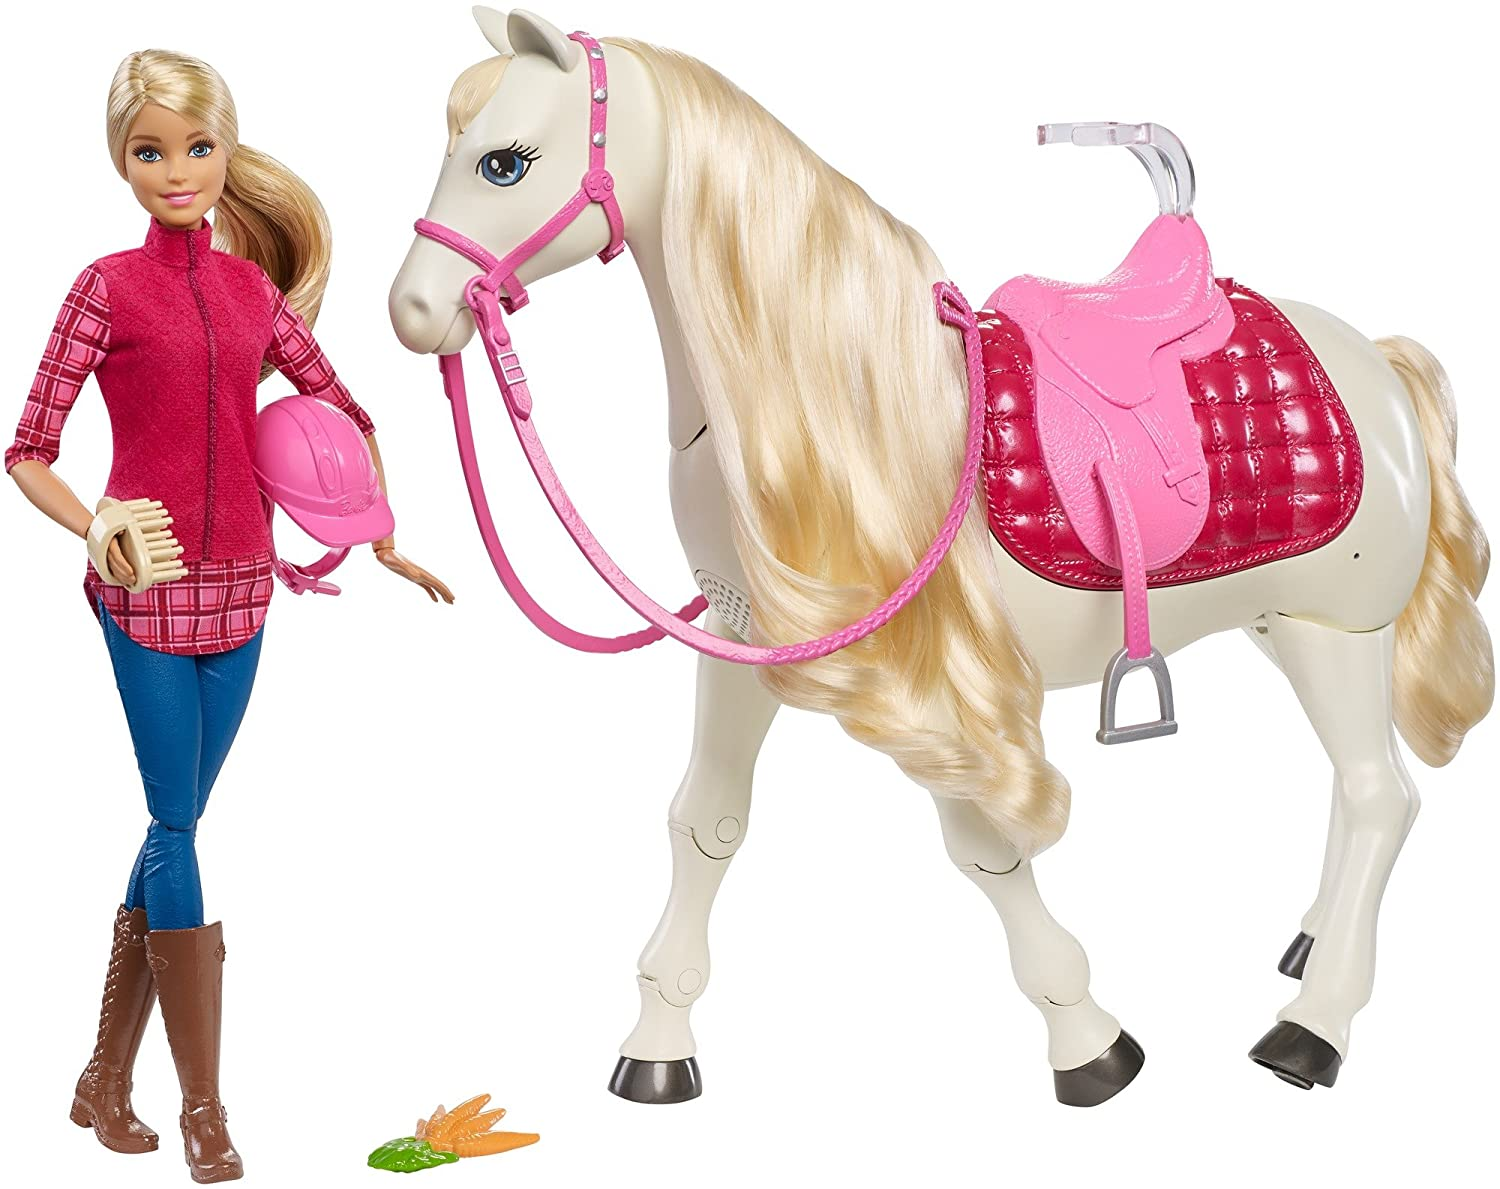 You can buy the Barbie Dream Horse and Doll here